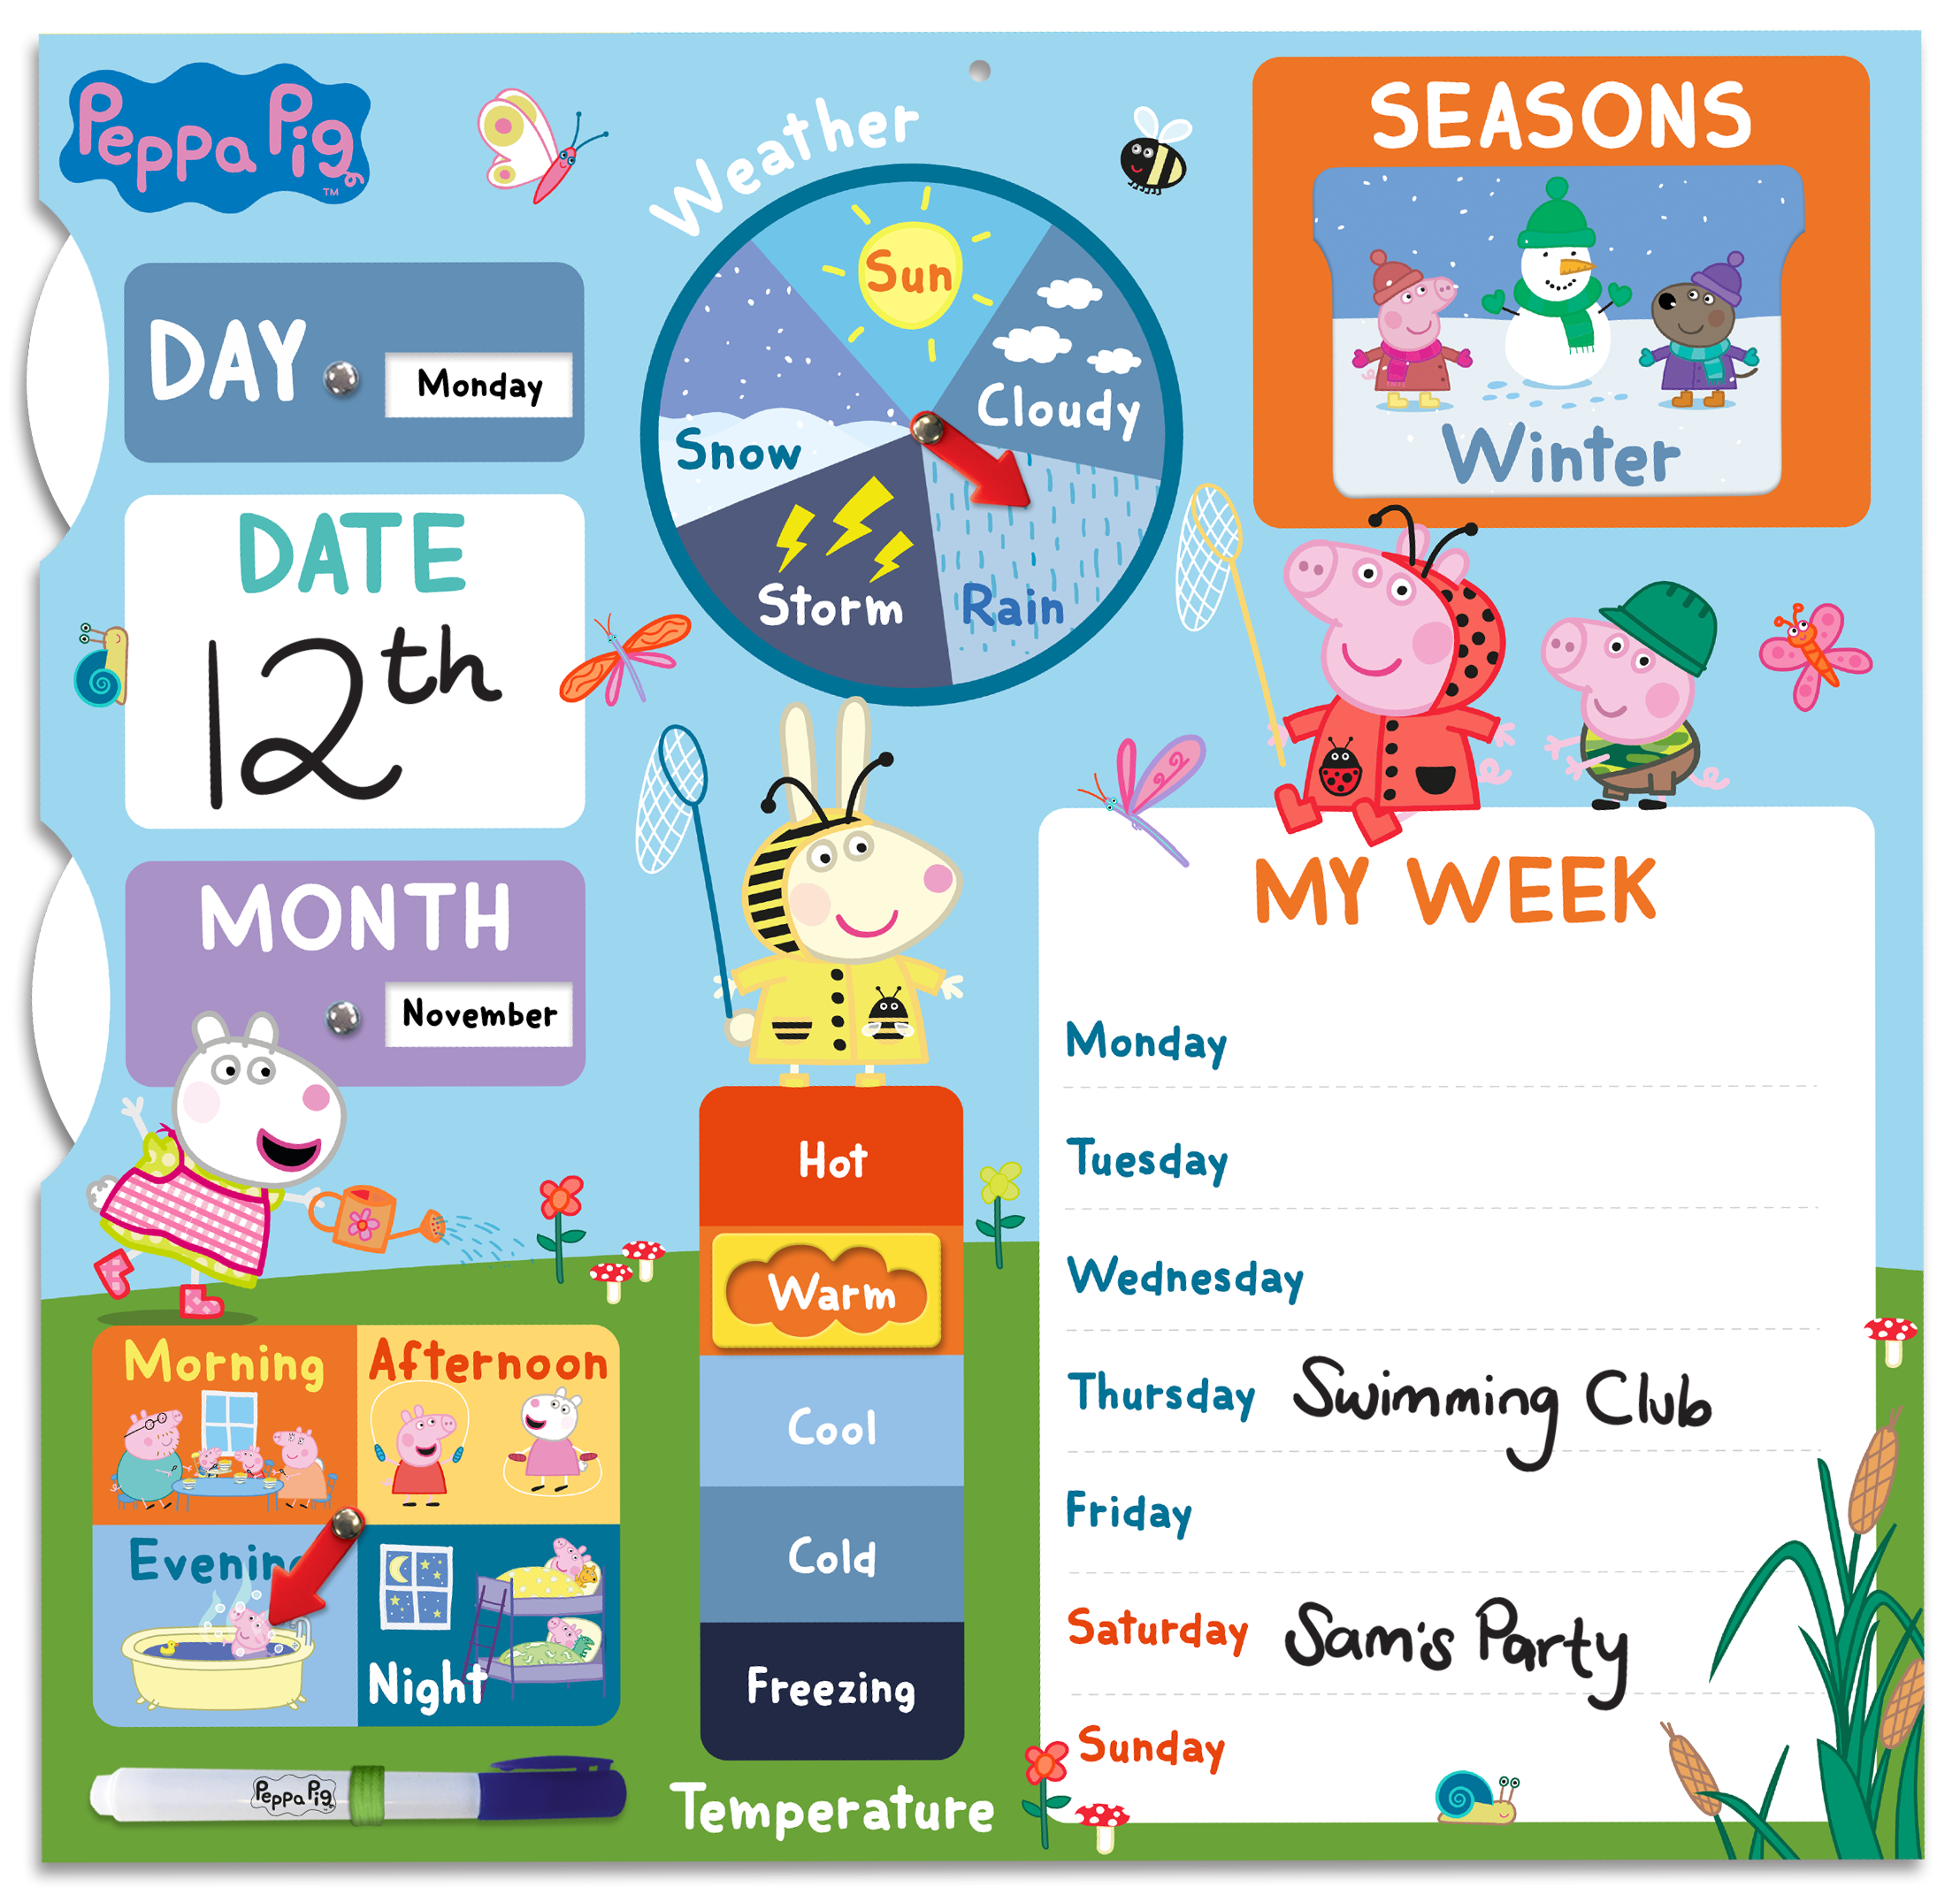 Above: The use of well-known children's characters, such as Peppa Pig adds to the My First Calendar's interactive nature, building their vocabulary and communication skills as the testers shared their observations.